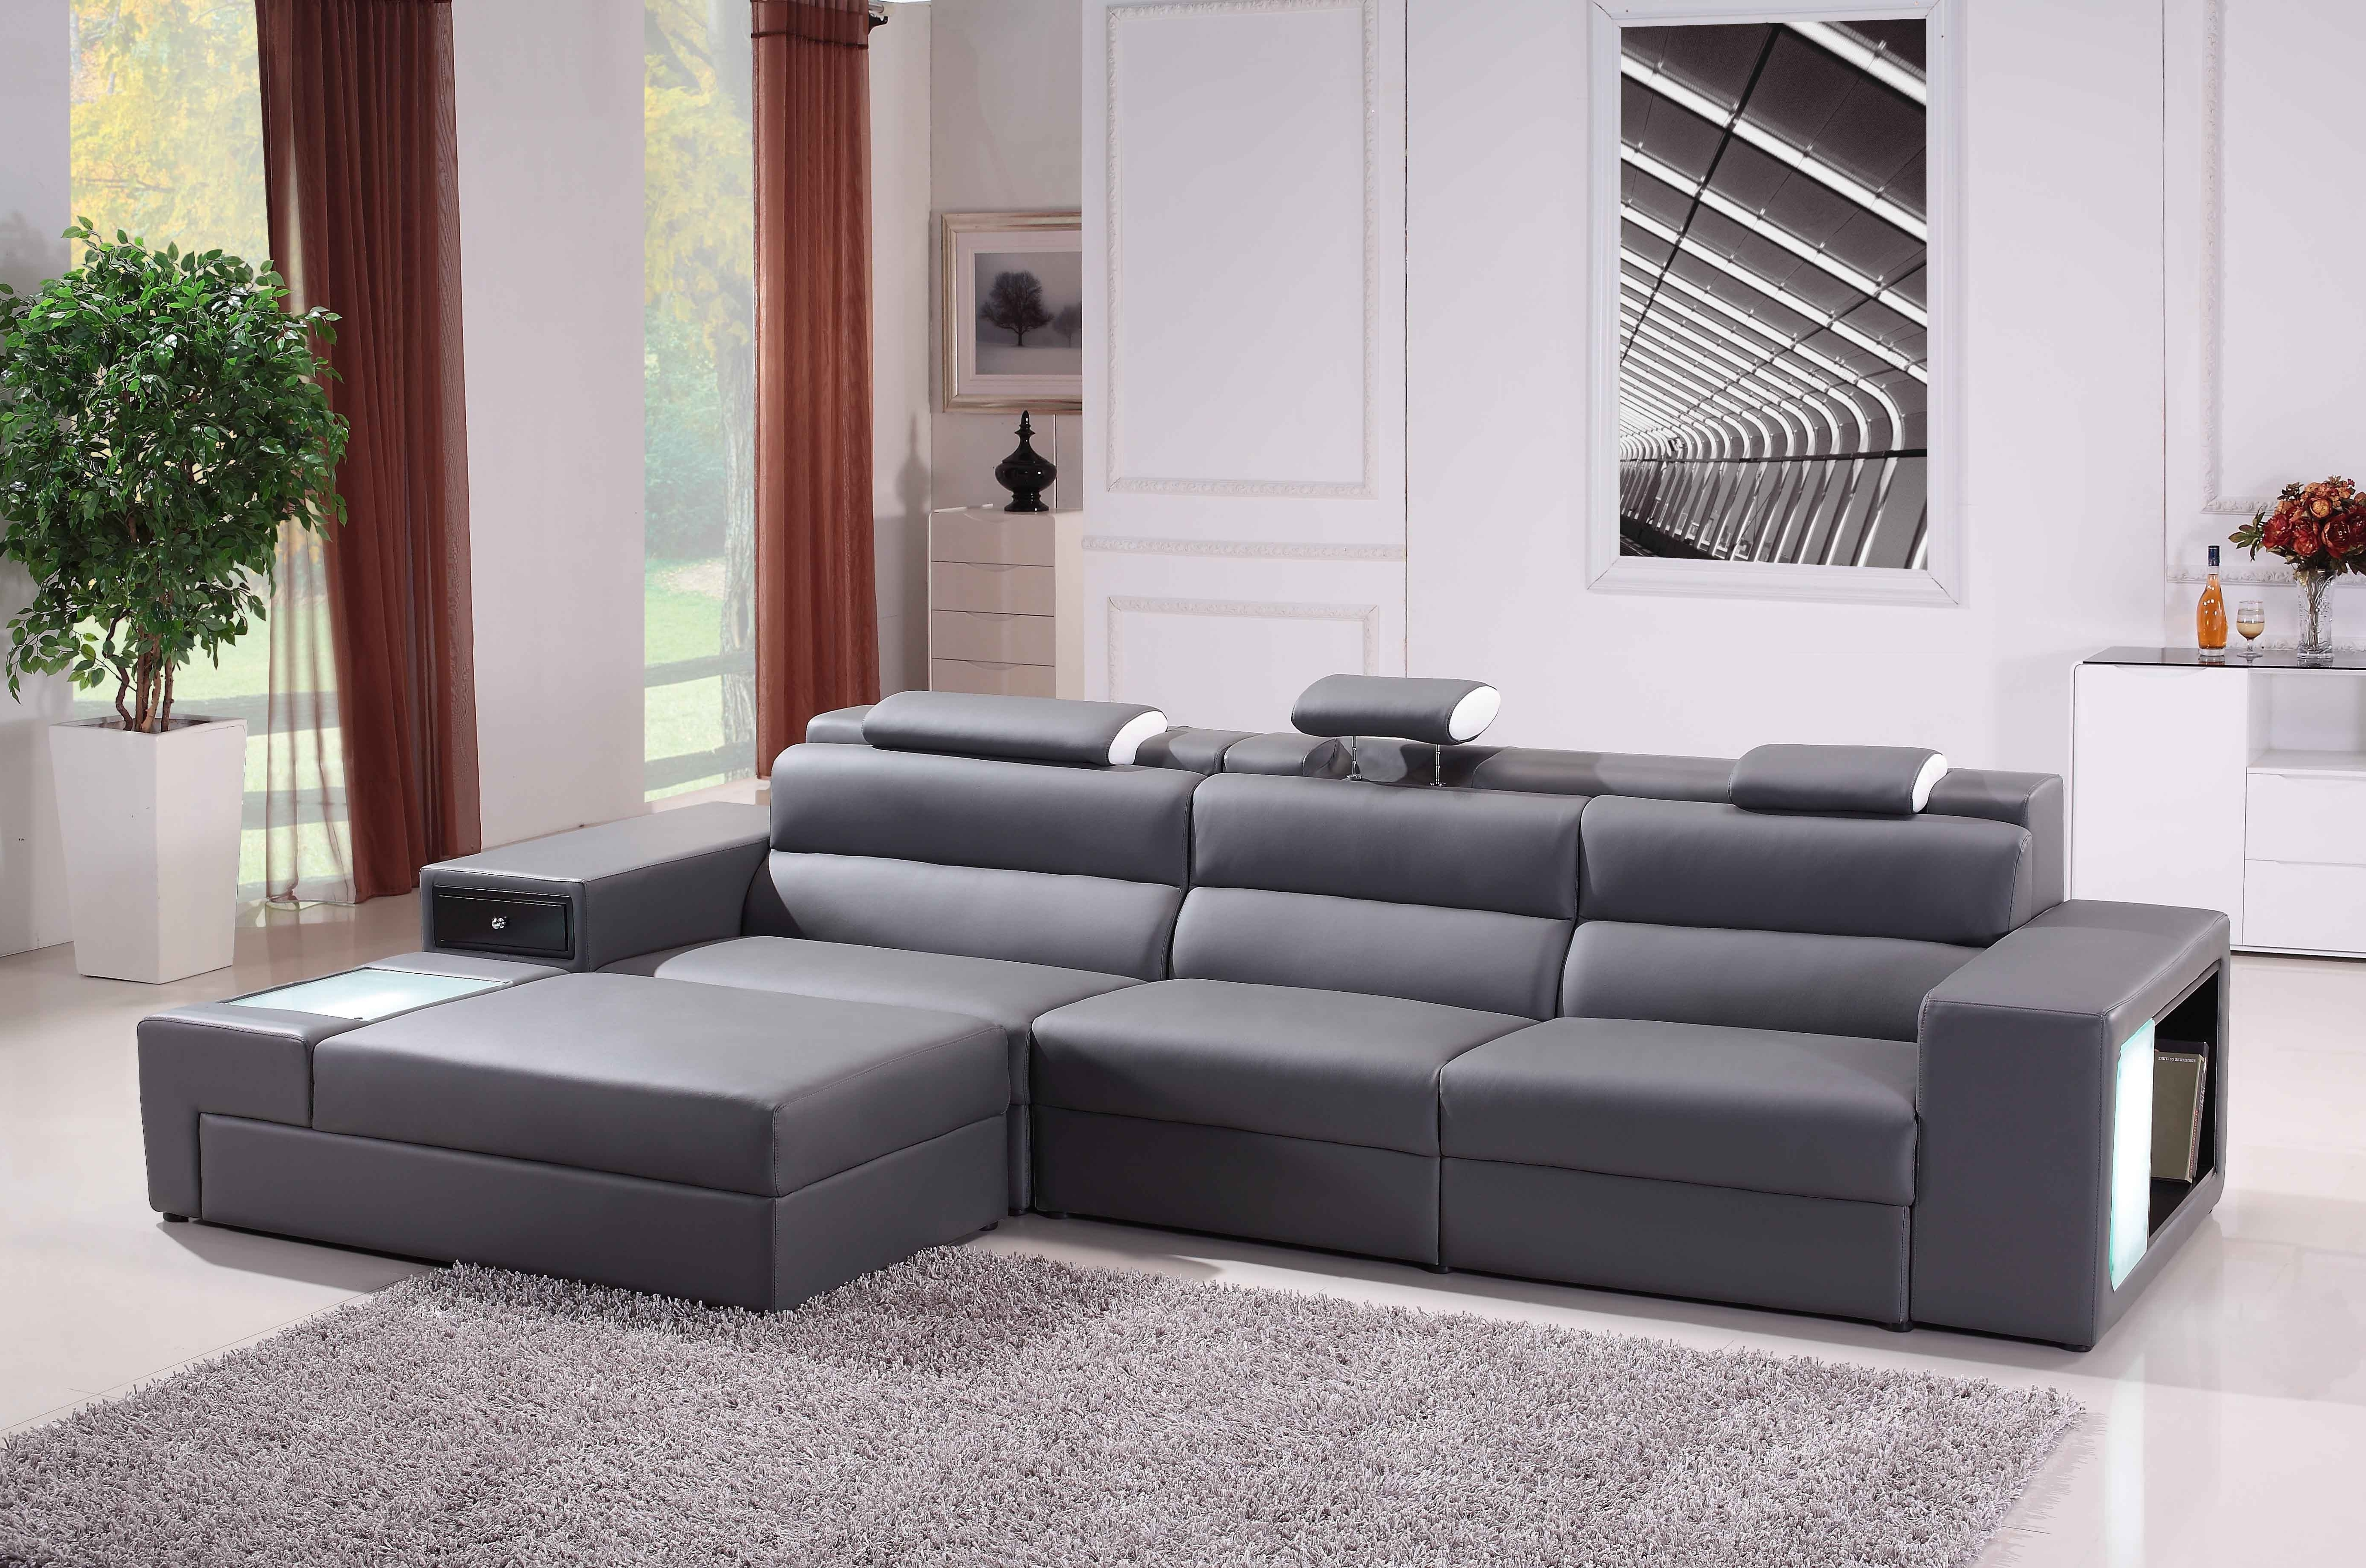 Gray Leather Sofa Chaise Lounge With Three Seat Placed On The With Trendy Leather Couches With Chaise Lounge (View 4 of 15)